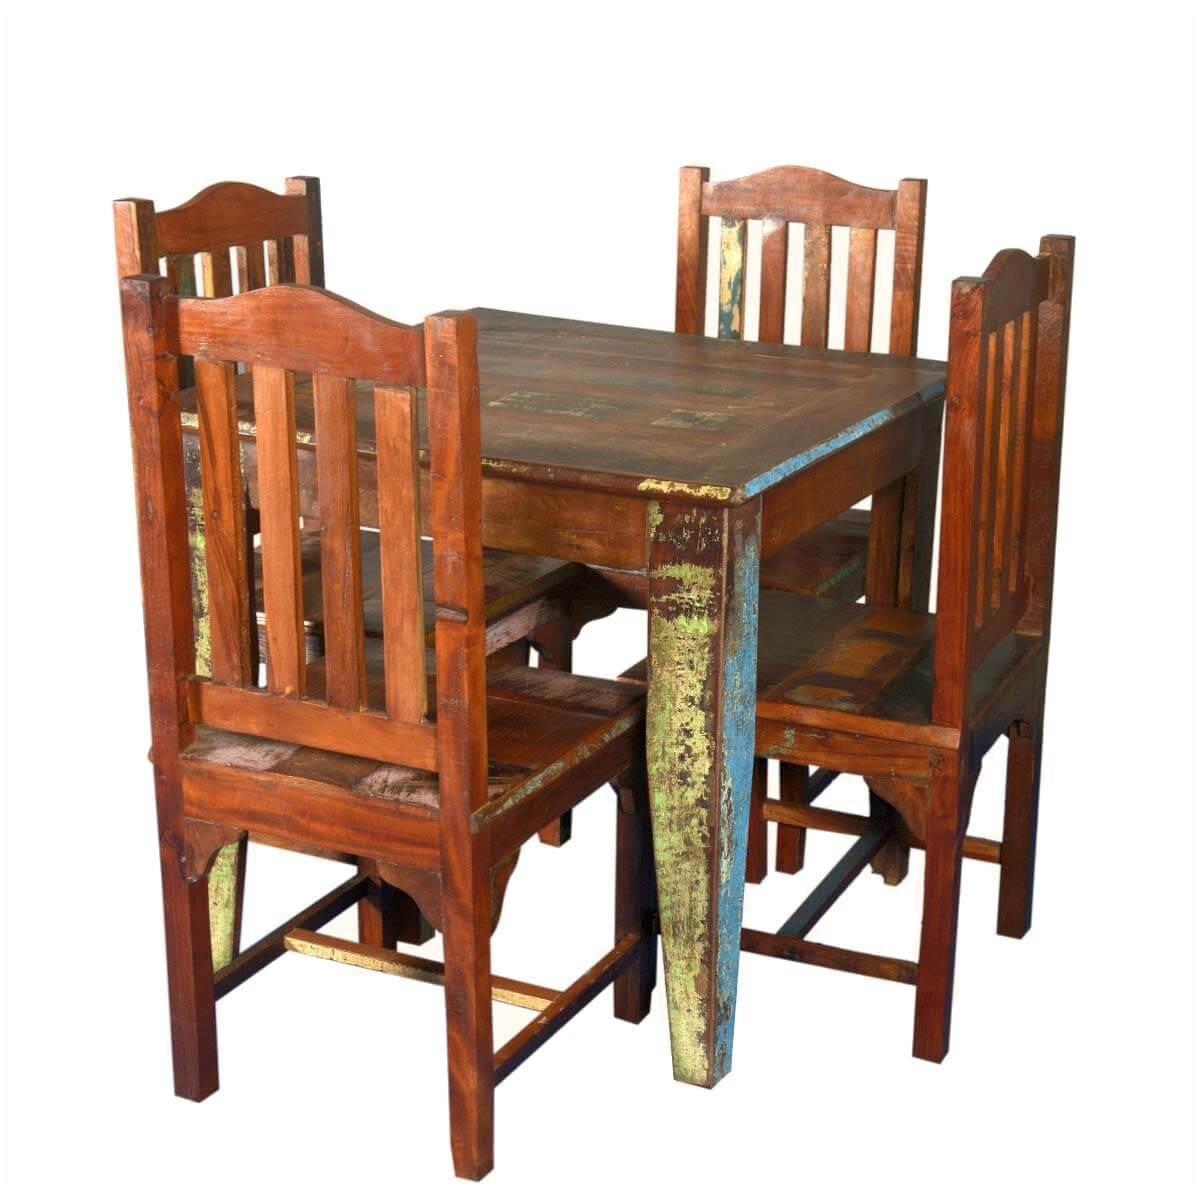 norwalk reclaimed wood square dining table with 4 chairs set. Black Bedroom Furniture Sets. Home Design Ideas